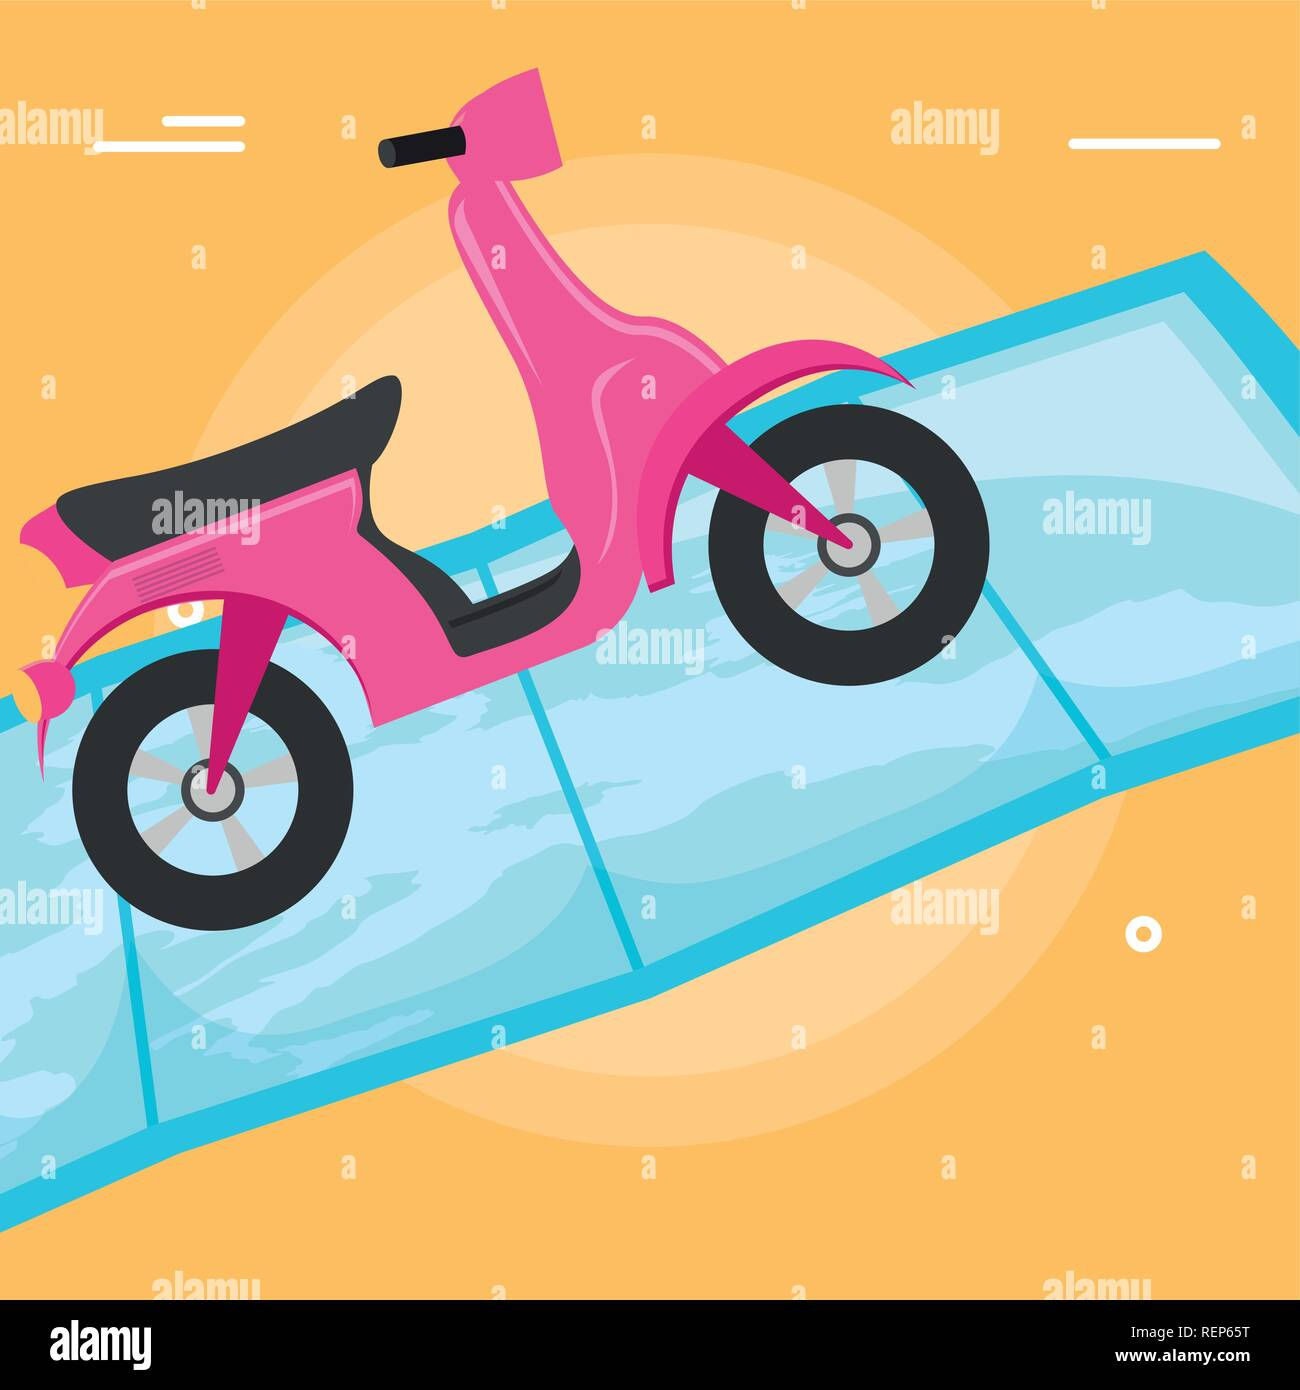 Motorcycle on a map over white background, vector illustration - Stock Vector